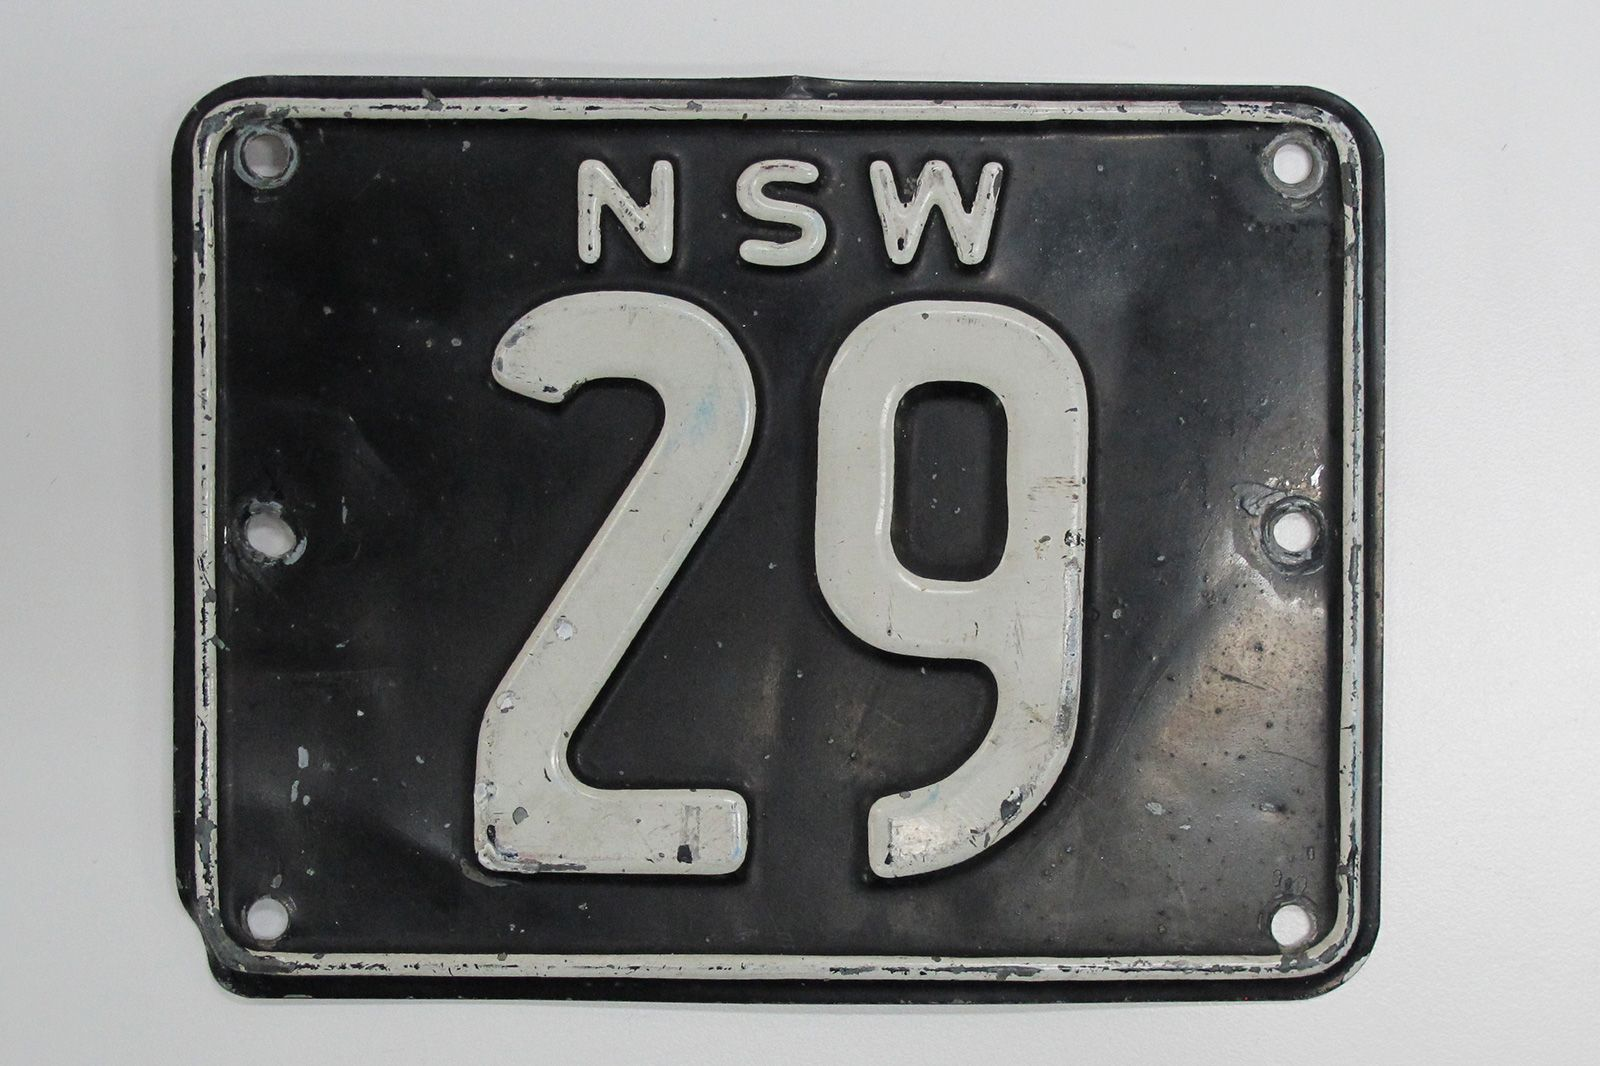 NSW Number Plate 29 Sets New Auction Record